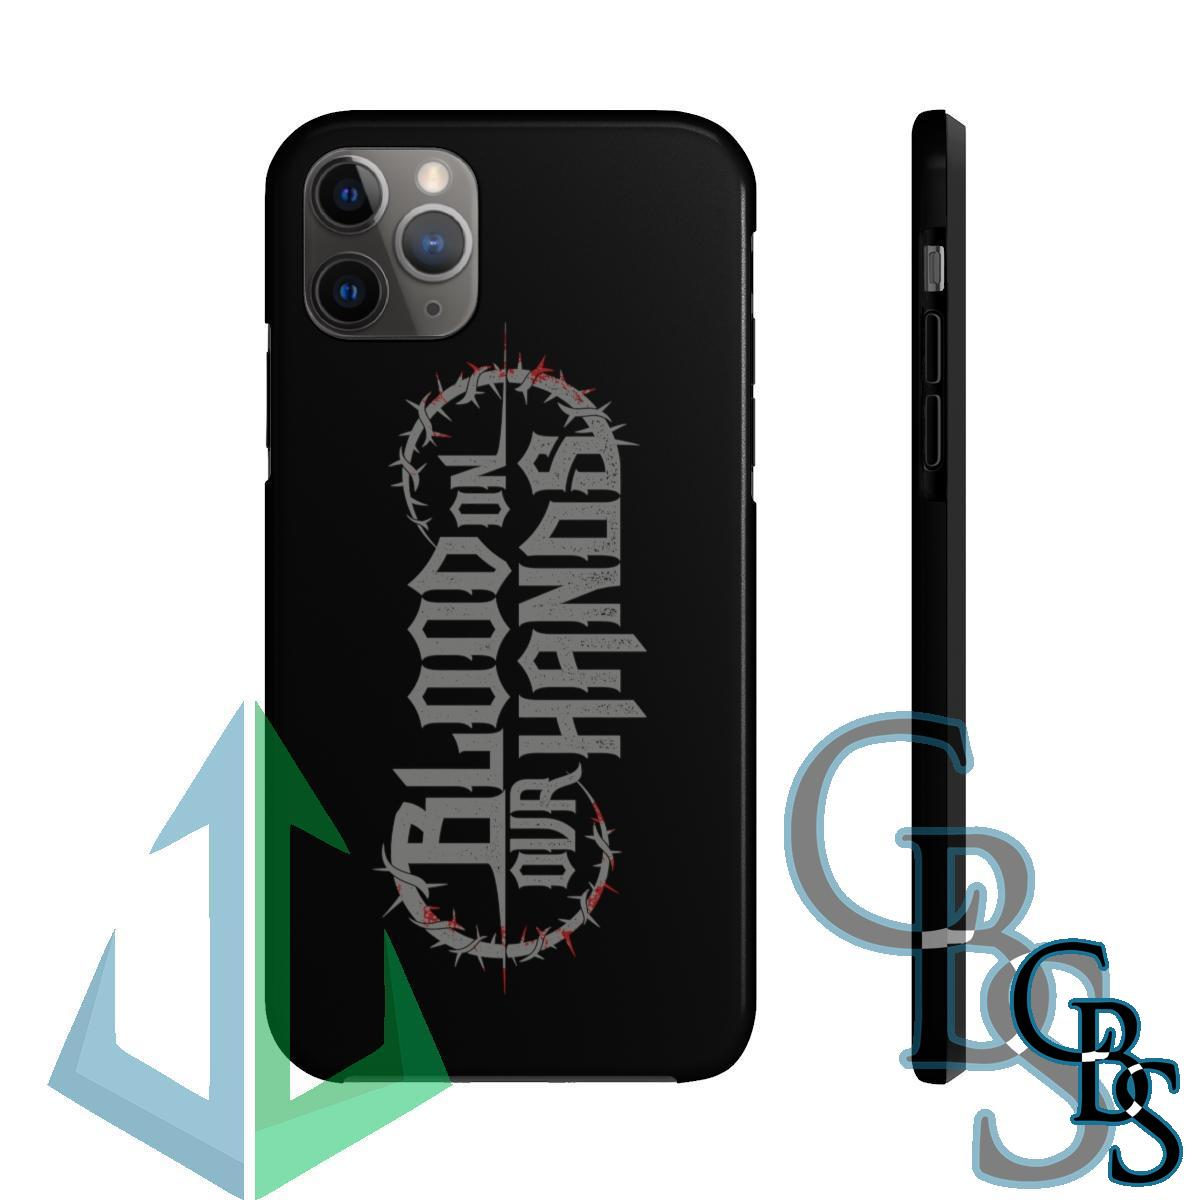 Blood on Our Hands (Meltdown) Tough iPhone Cases (iPhone 7/7 Plus, iPhone 8/8 Plus, iPhone X, XS, XR, iPhone 11, 11 Pro, 11 Pro Max)